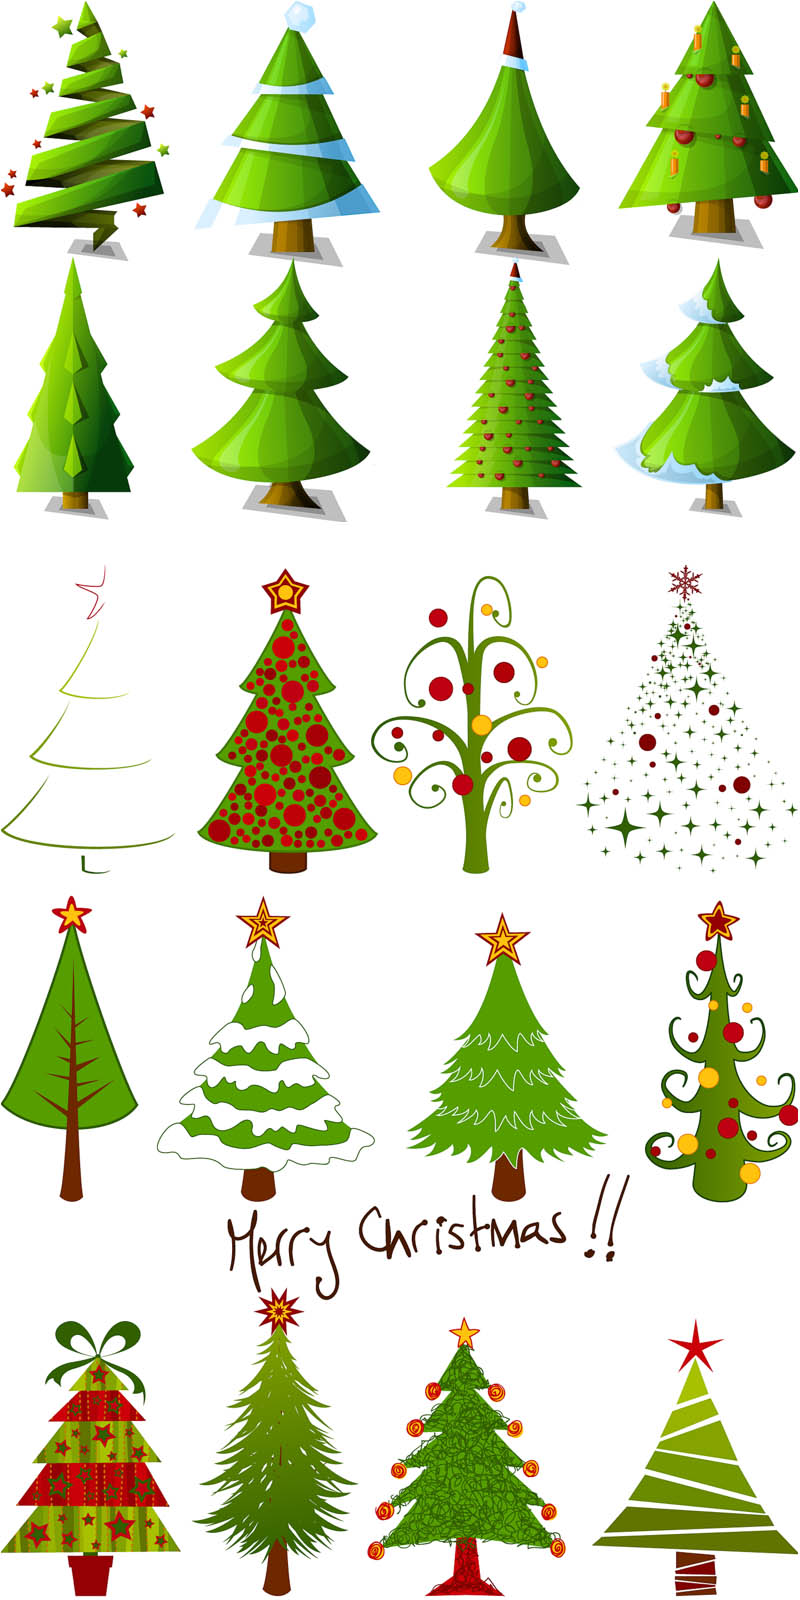 Christmas Tree clipart logo Cartoon Xmas styles designs tree